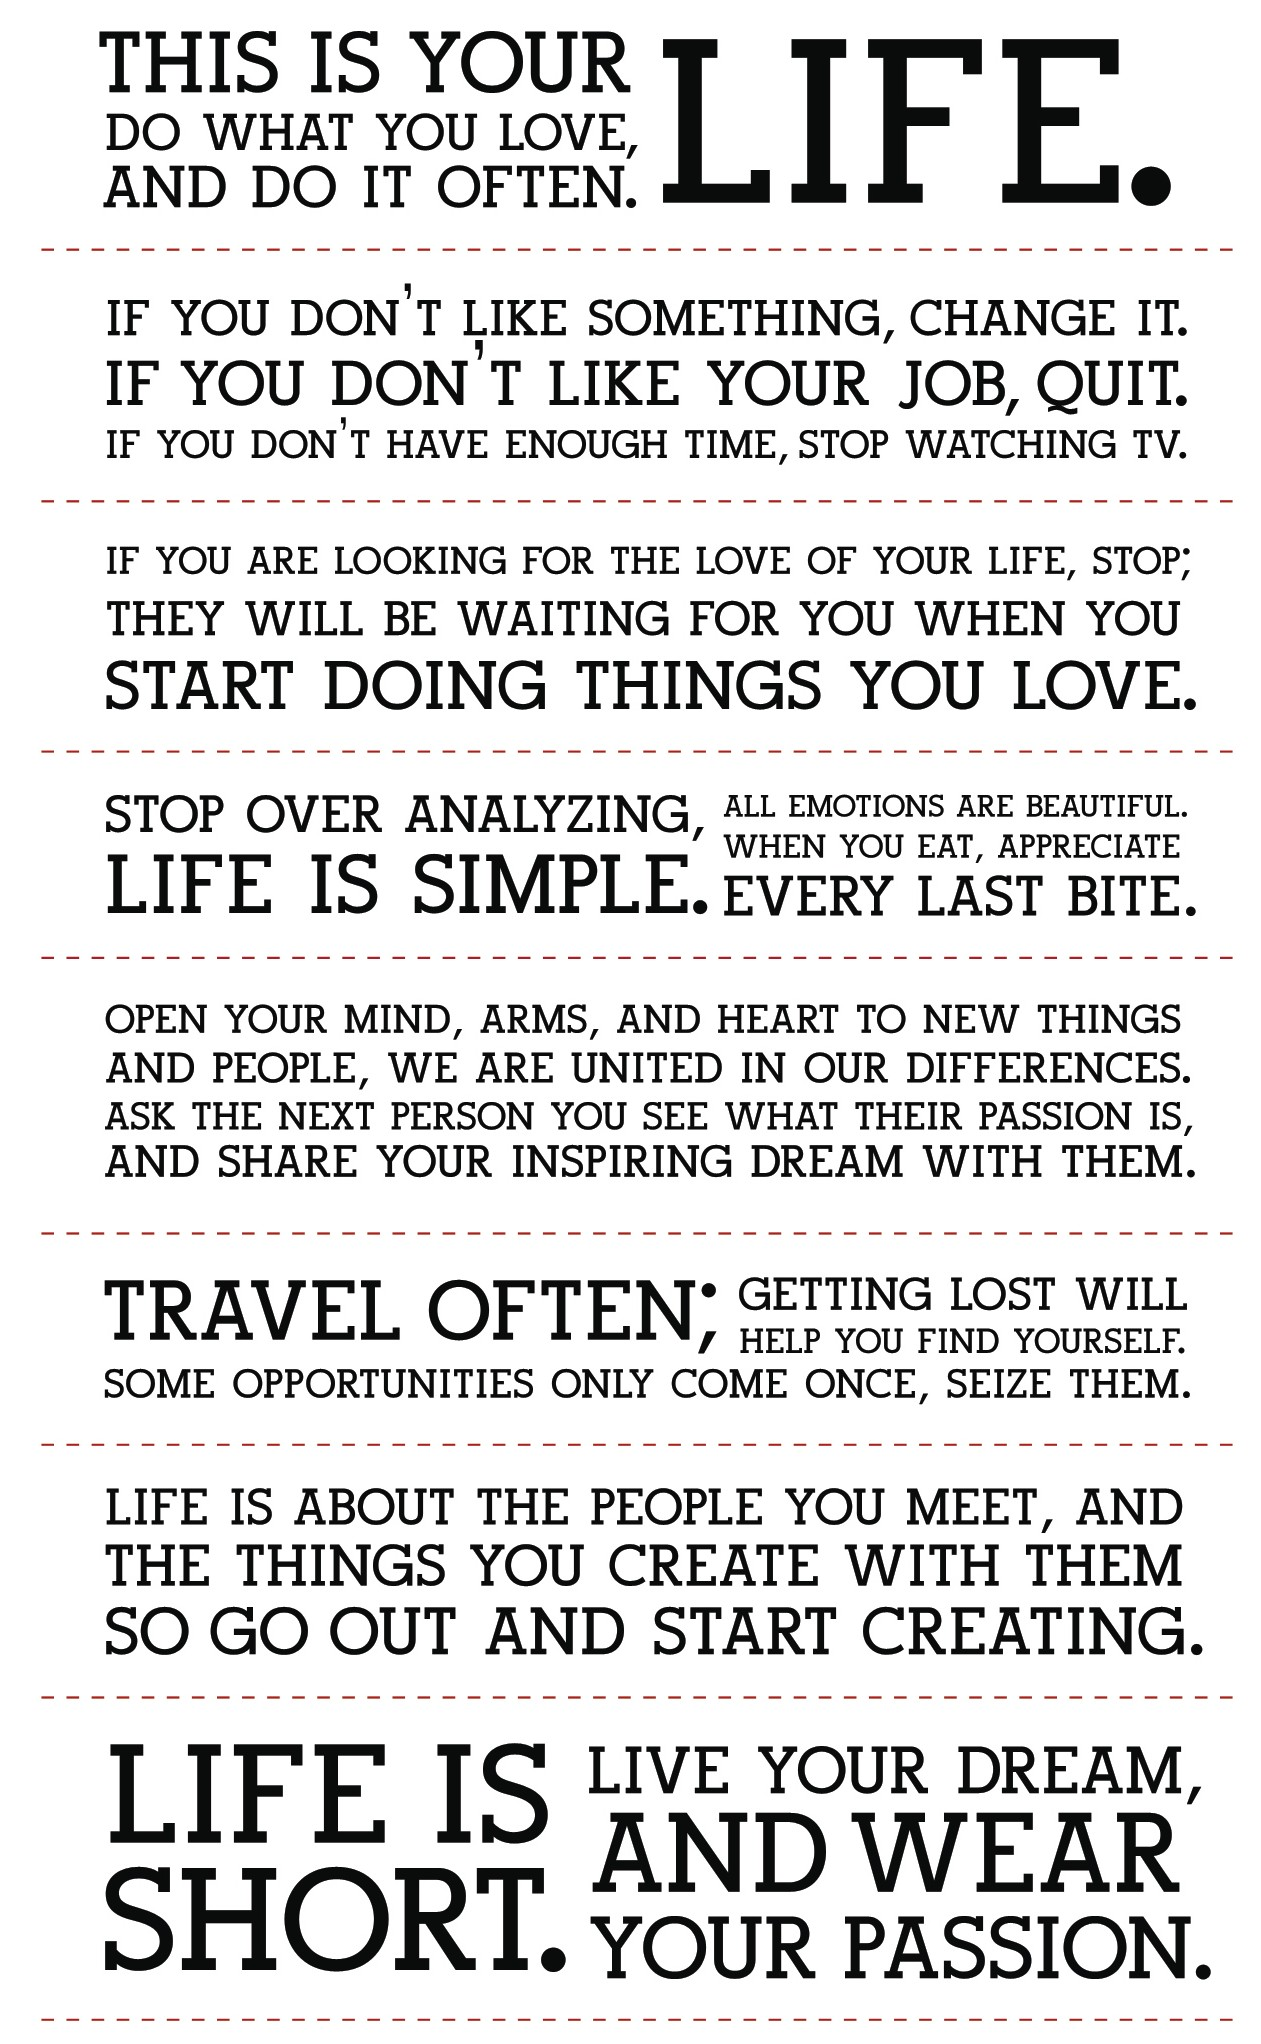 Holstee Manifesto This Is Your Life. Do What You Love And Do It Often ...